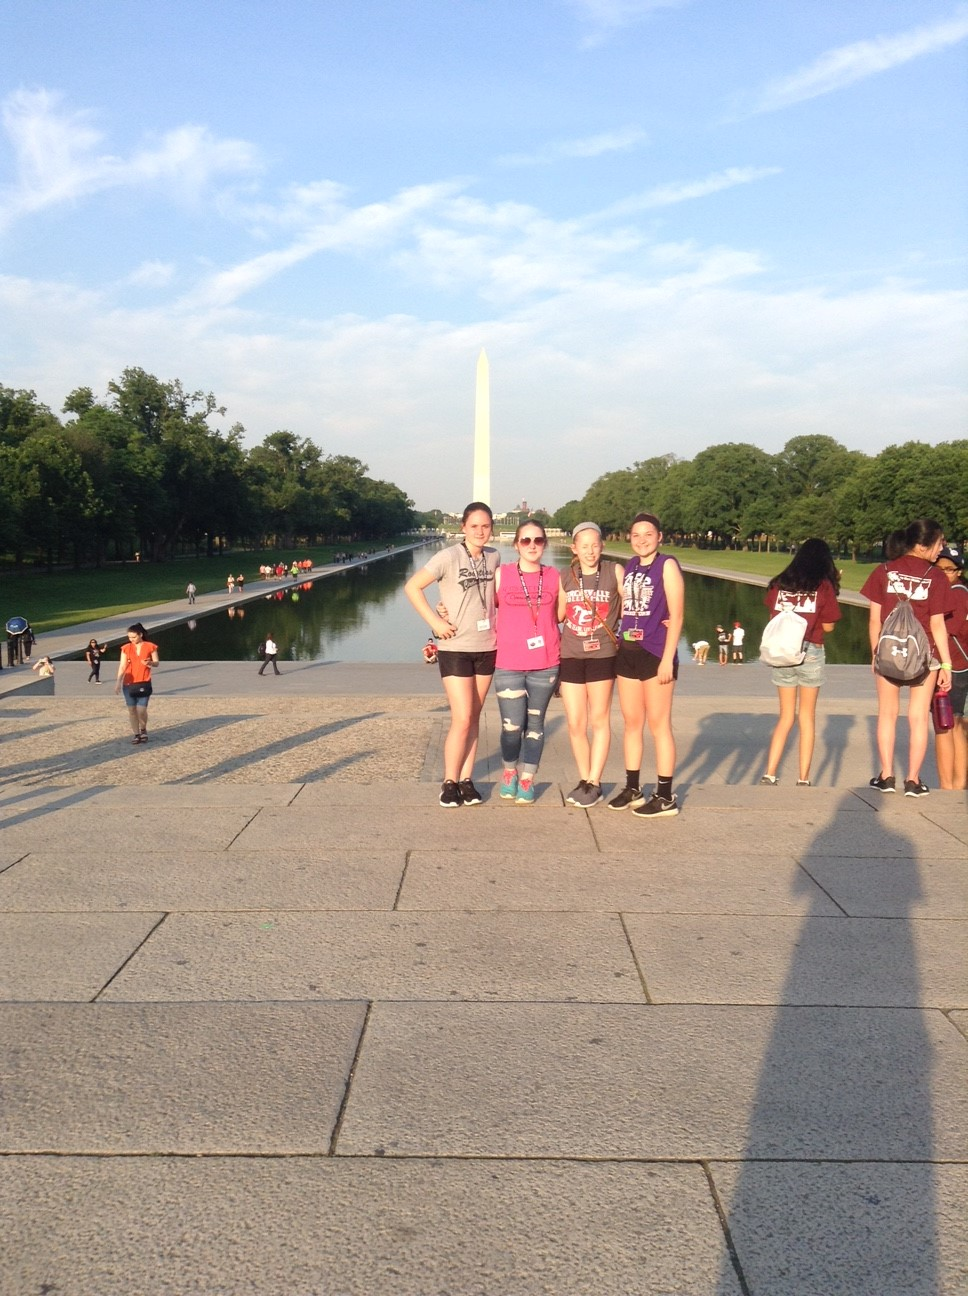 Santana Fowler, Alyssa Smith, Shelby Matthews, and Kayla Sark in front of the Washington Monument.